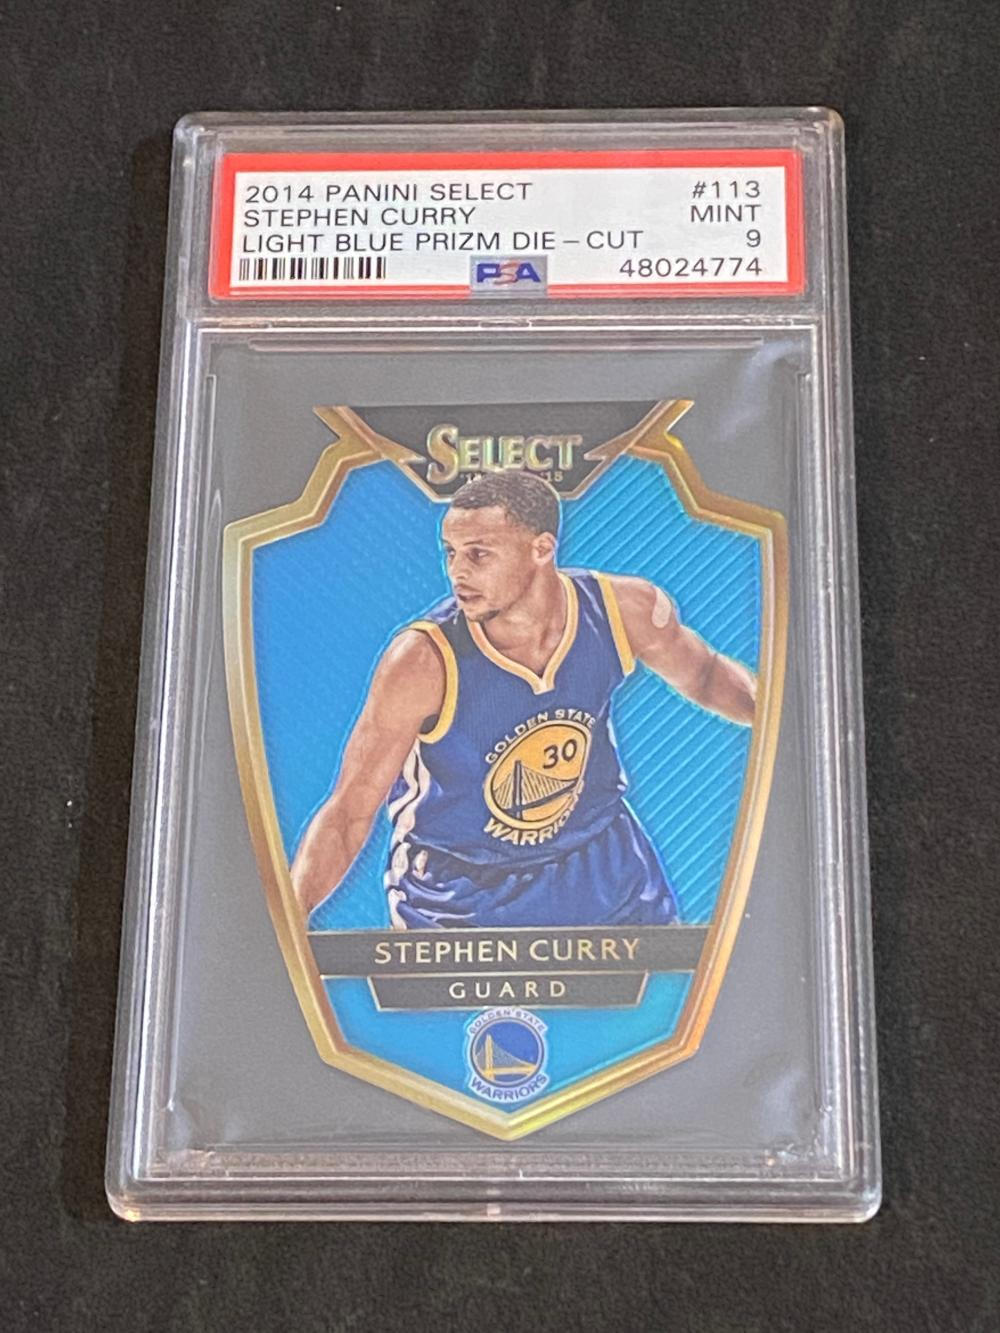 PSA 9 (Mint) #'d /199 2014-15 Select Light Blue Prizm Die Cut Stephen Curry #113 Basketball Card - Numbered /199